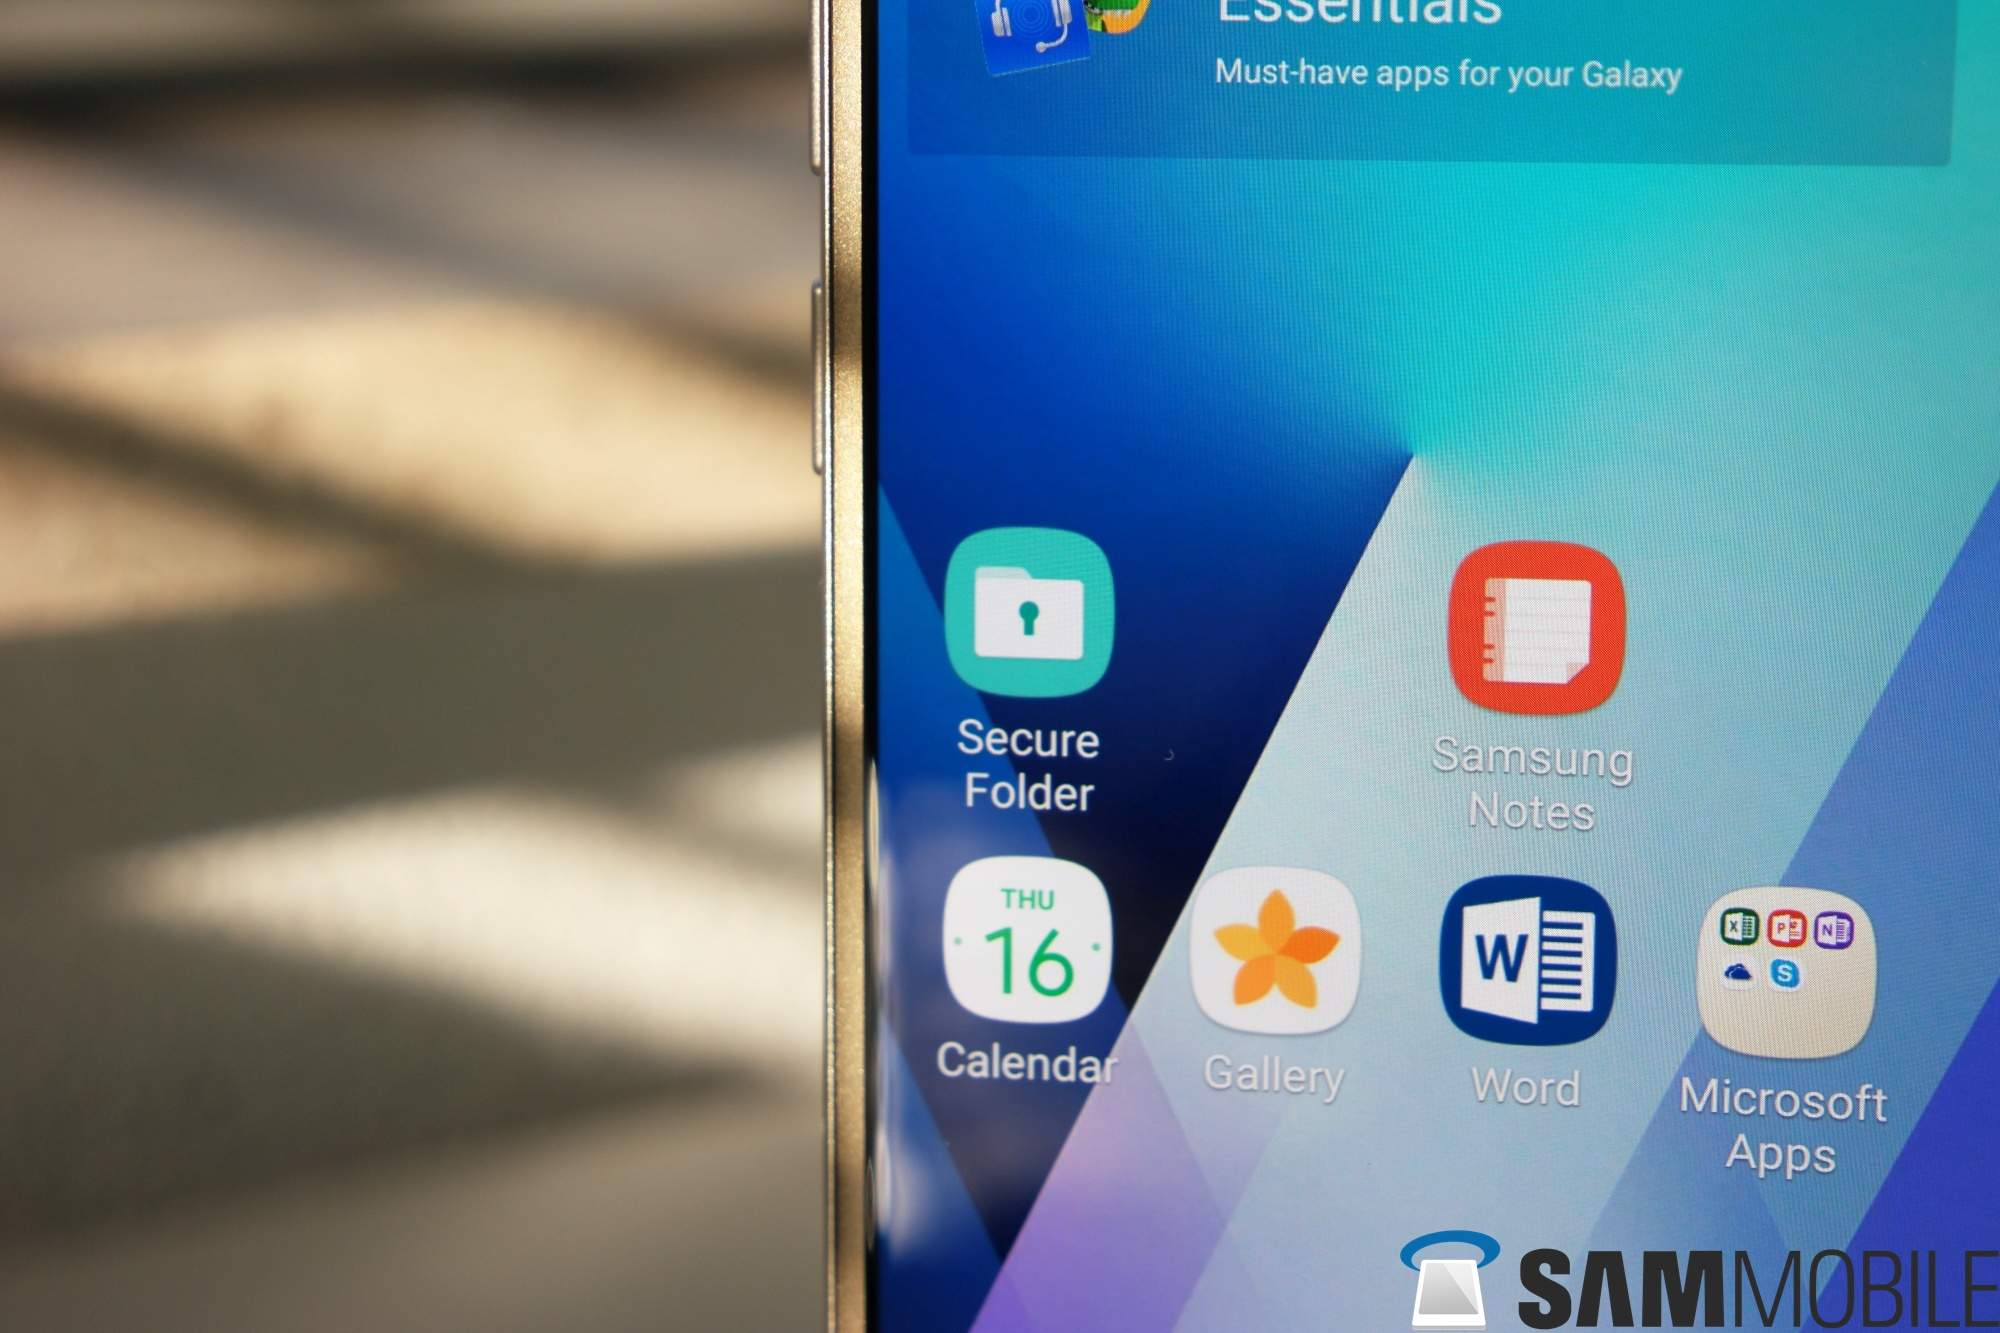 Galaxy A5 (2017) review: Samsung brings its 'A' game! - SamMobile